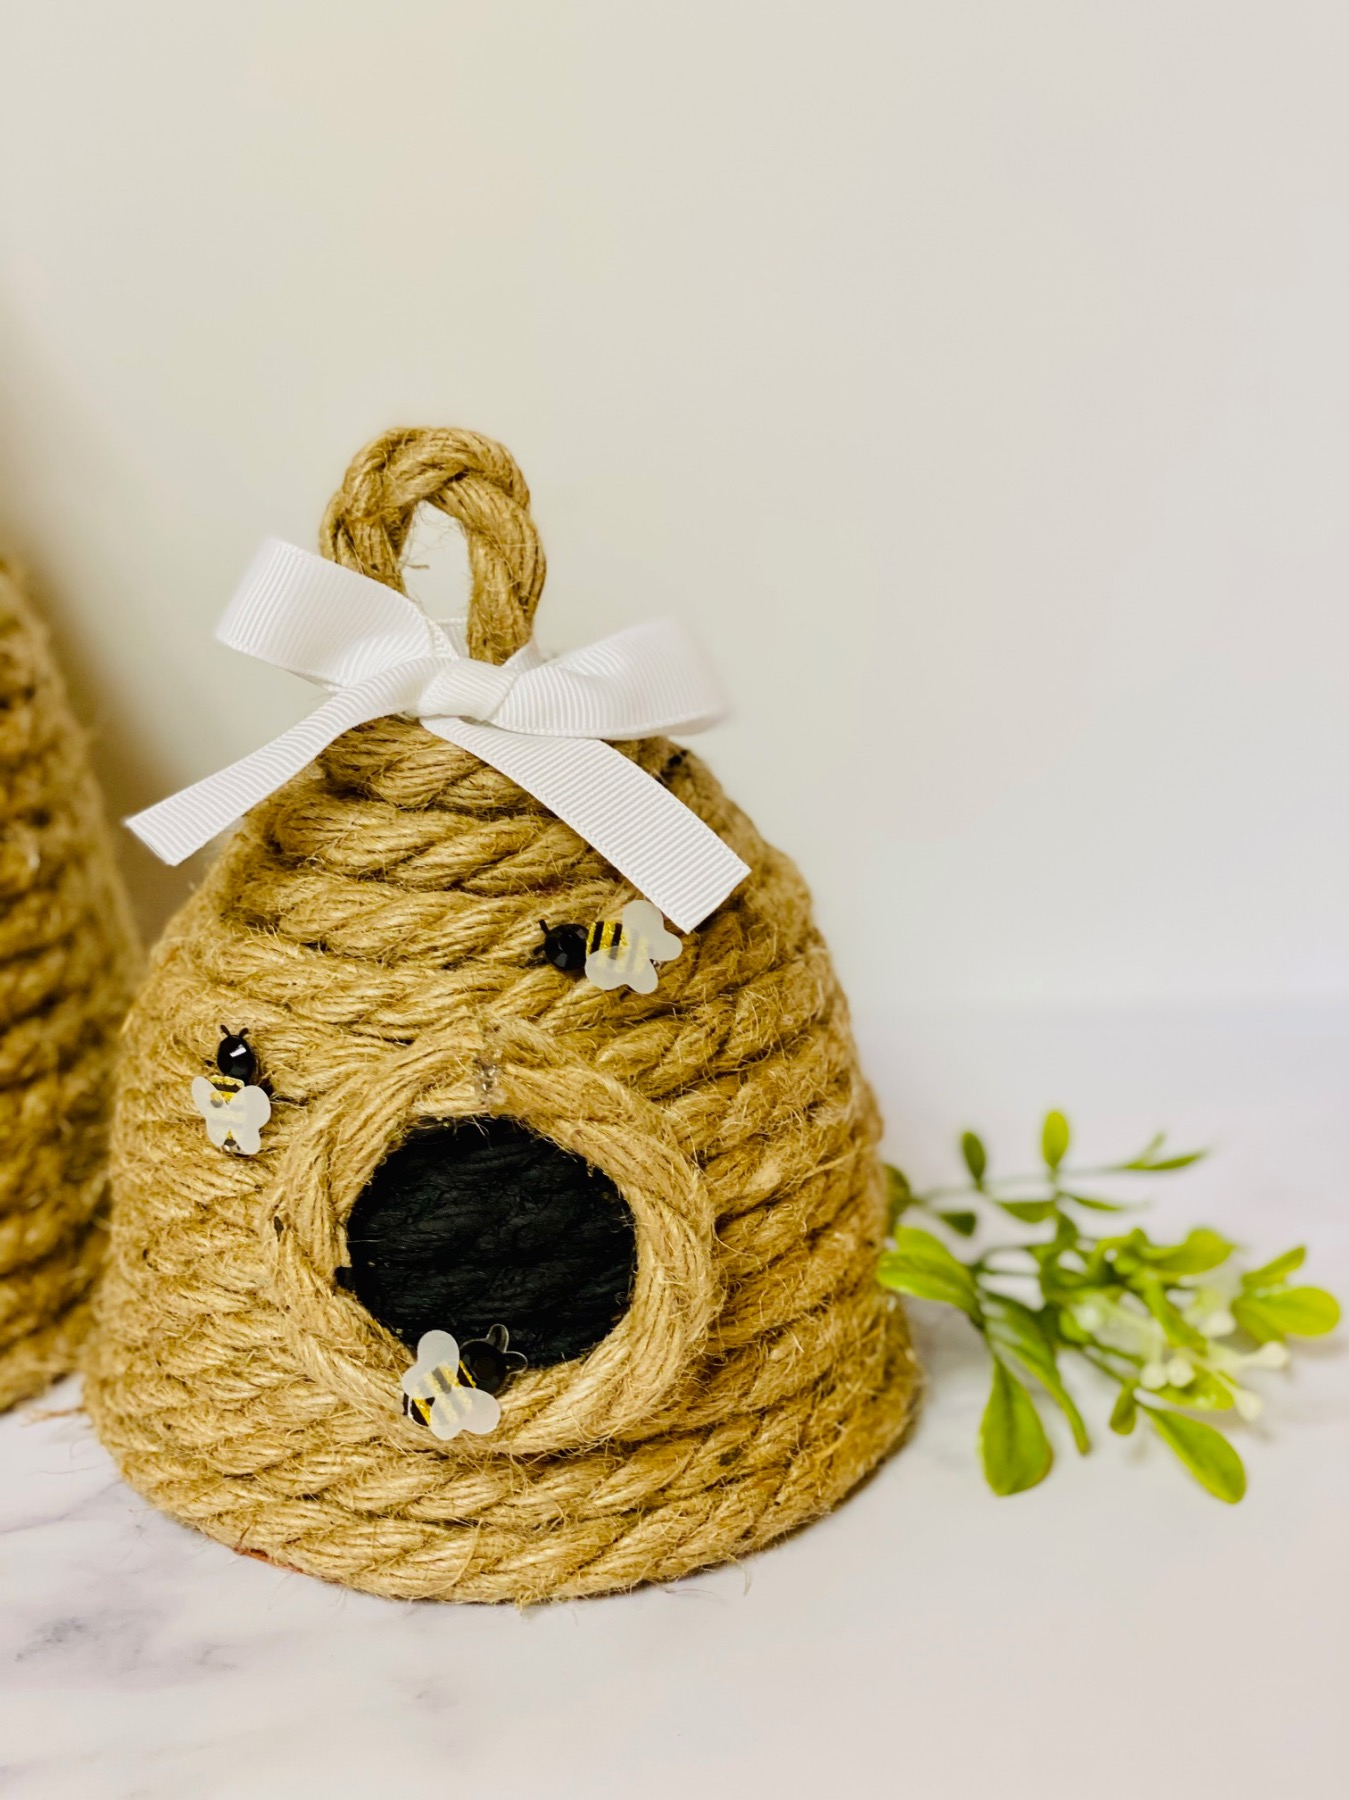 detail of diy beehive decoration with rope